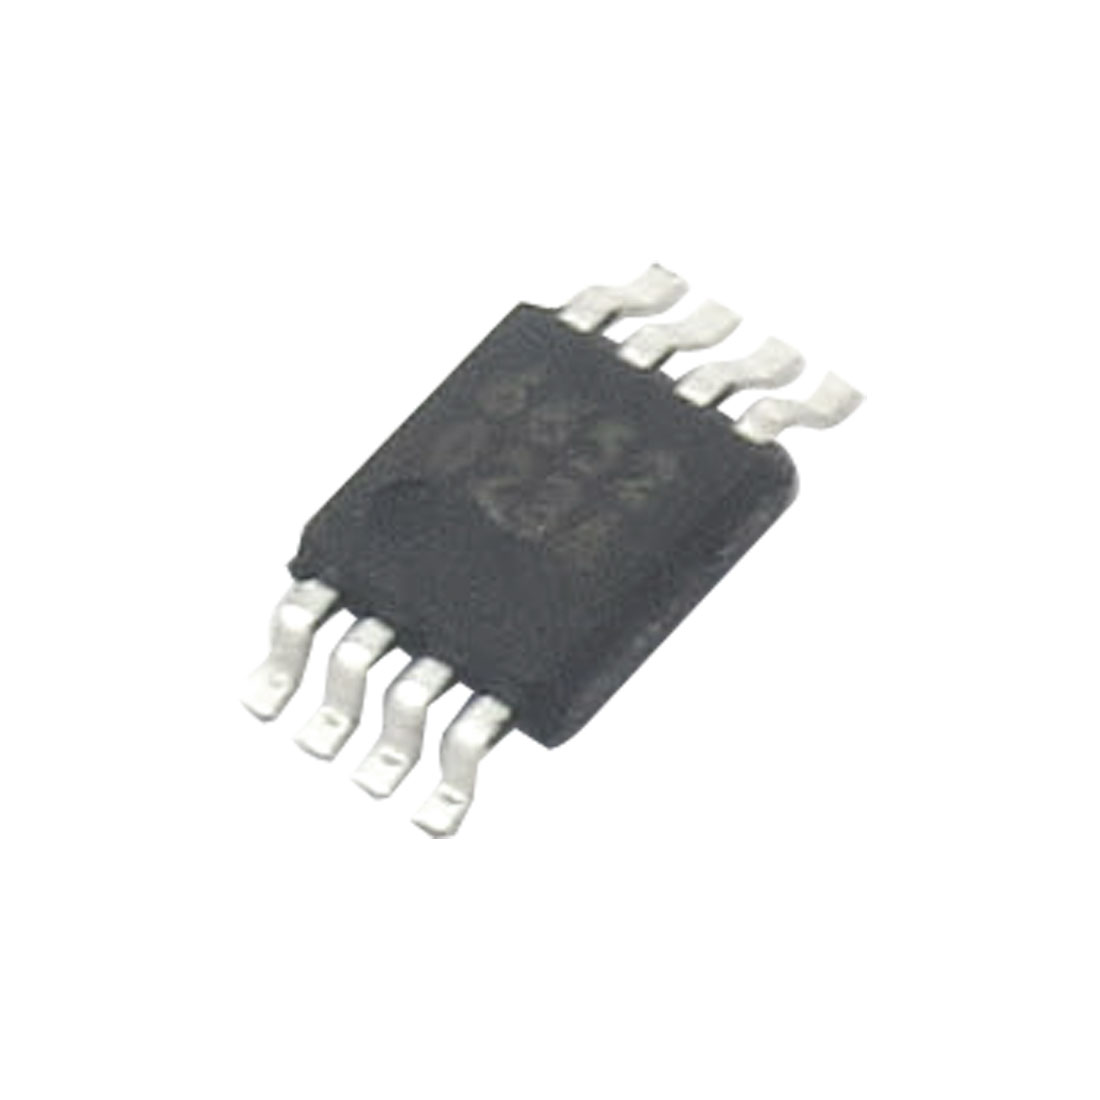 MBI6652 SOP-8 SMD SMT Type PCB Surface Mount LED Driver Circuit Module Integrated Circuit IC Chip